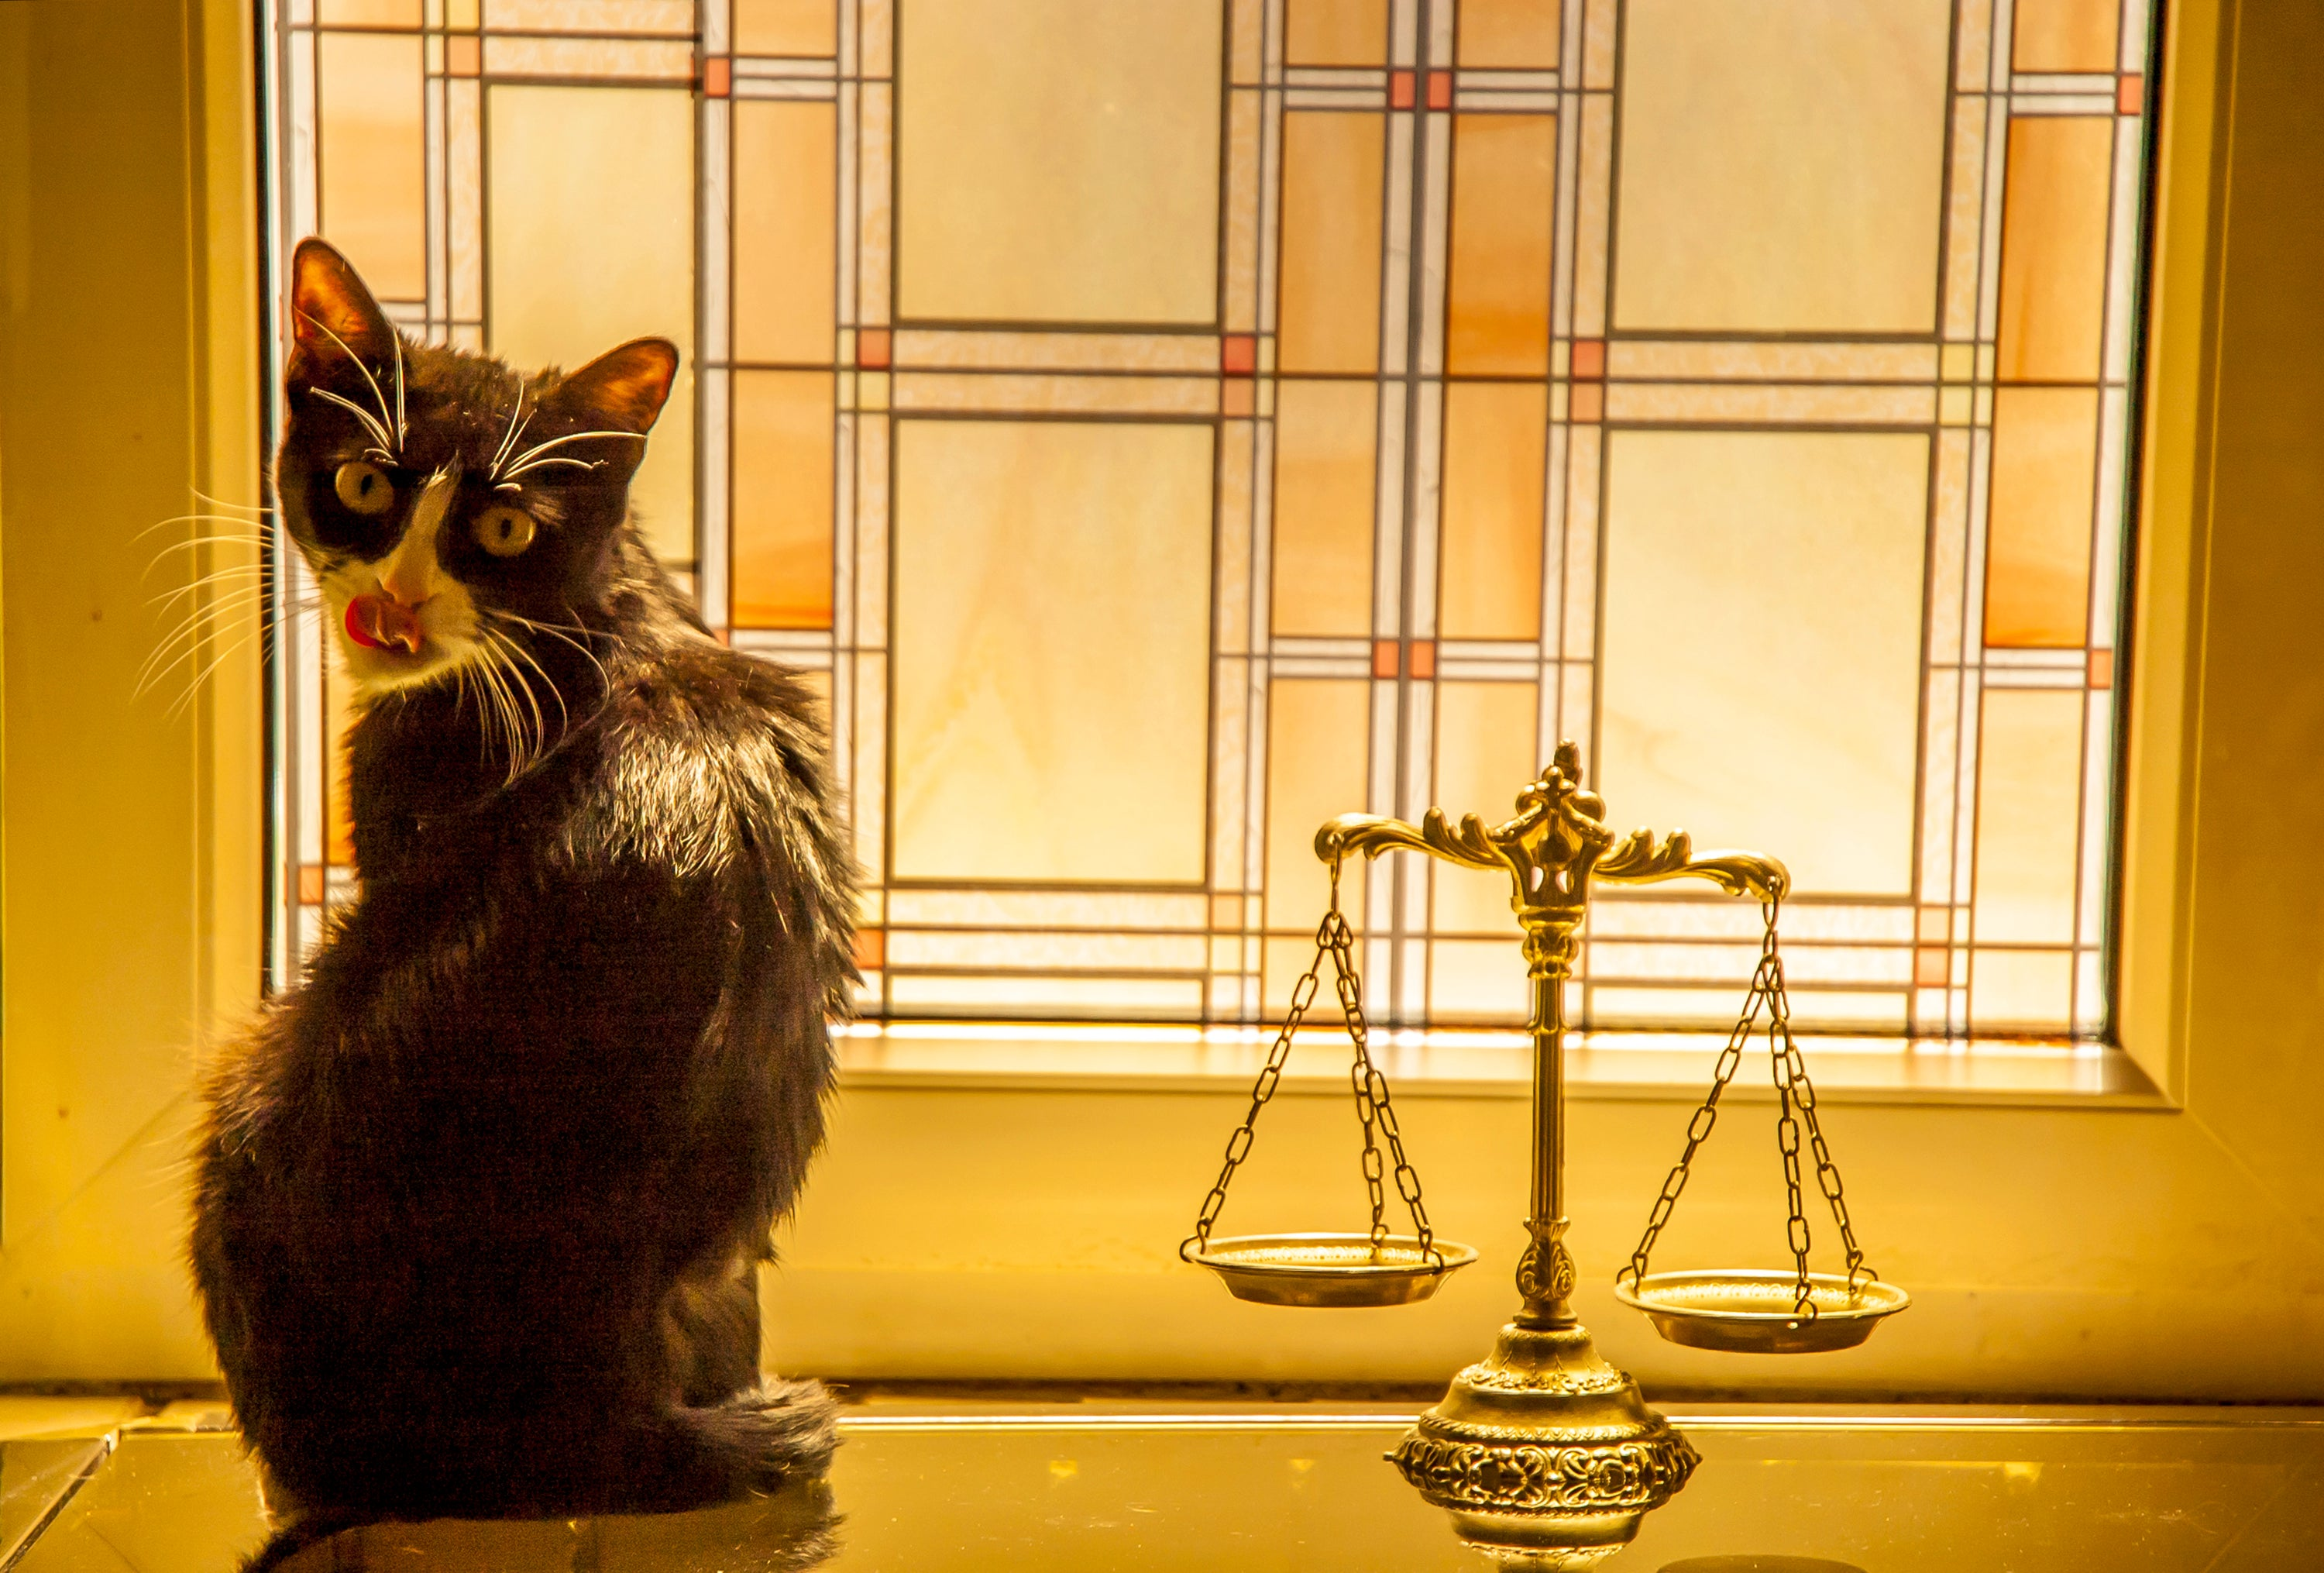 A black and white cat sitting next to the scales of justice.